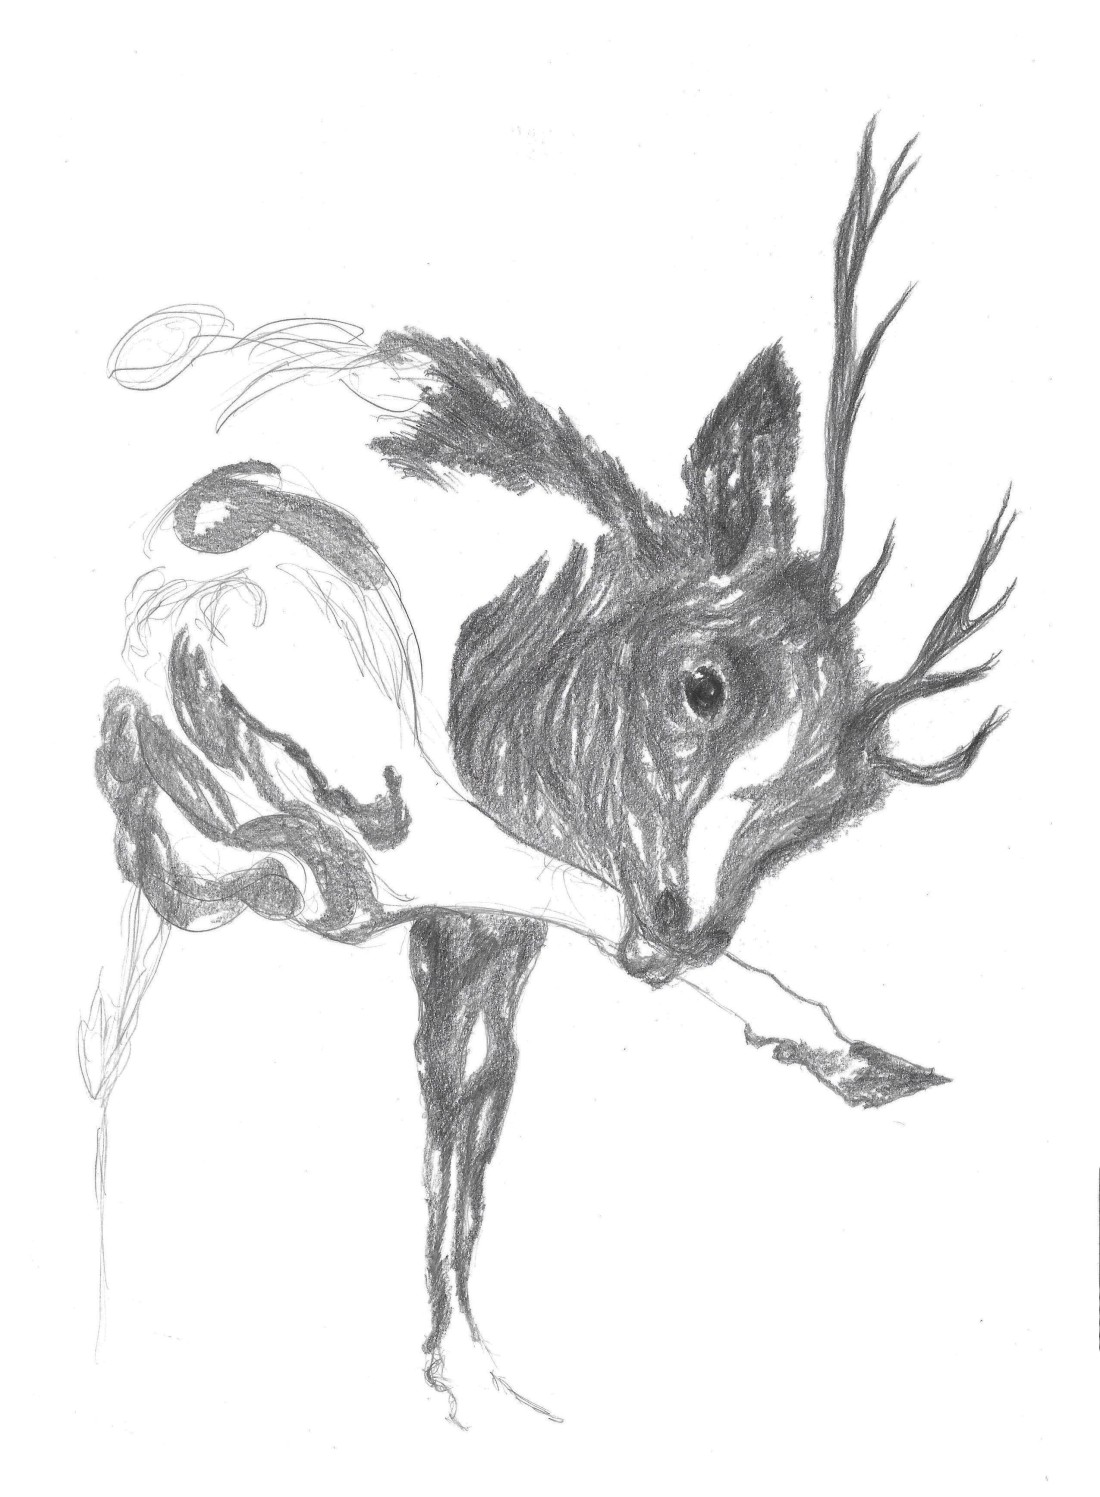 Deer linking is leg drawing on A4 paper